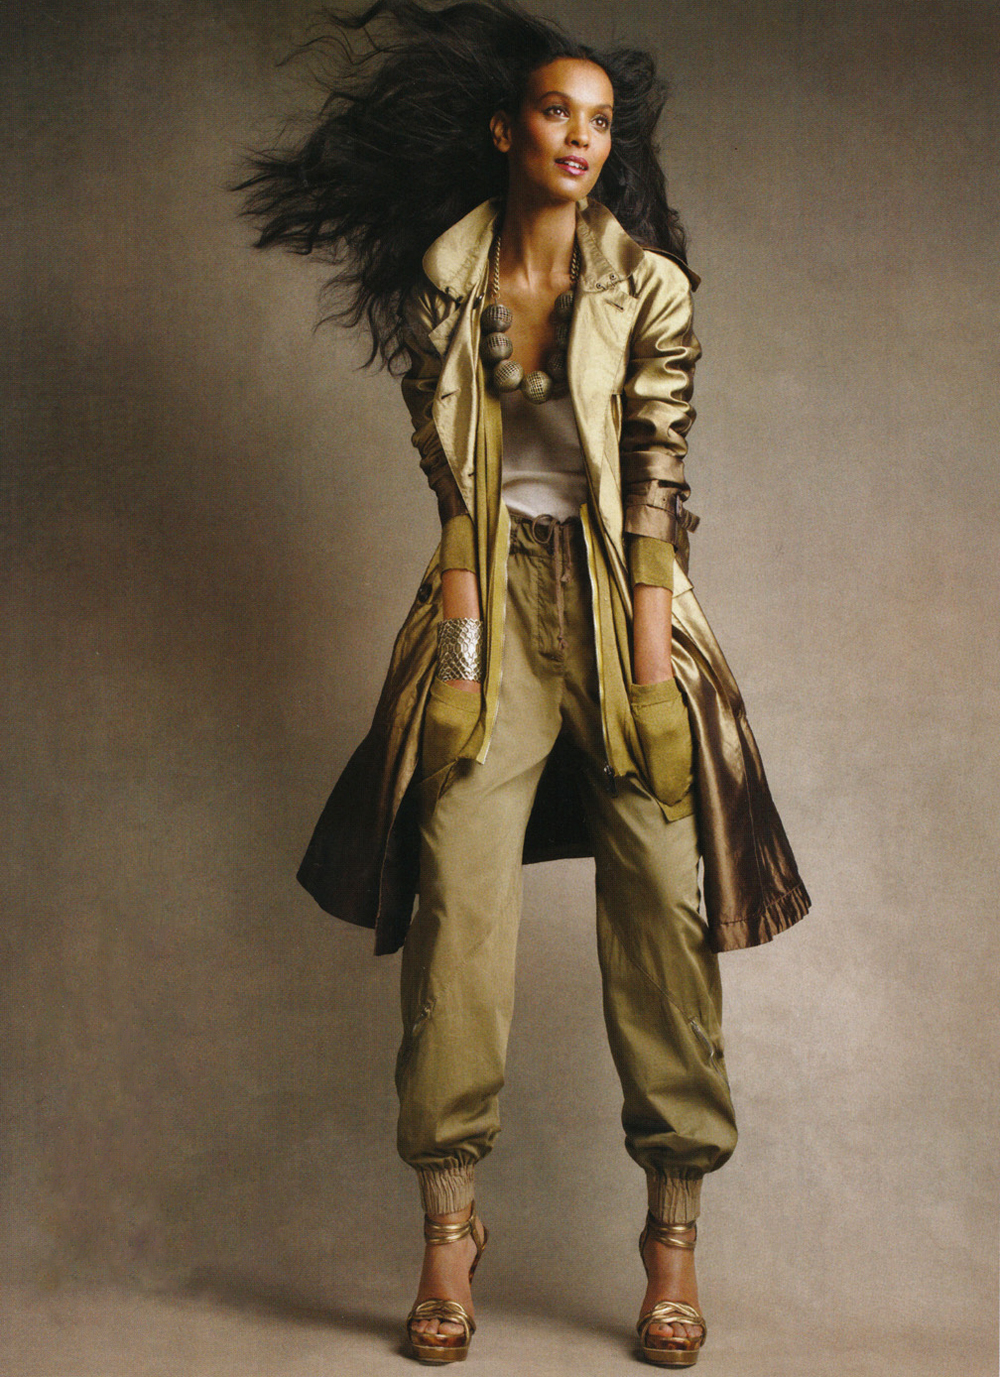 Vogue US March 2009 via www.fashionedbylove.co.uk